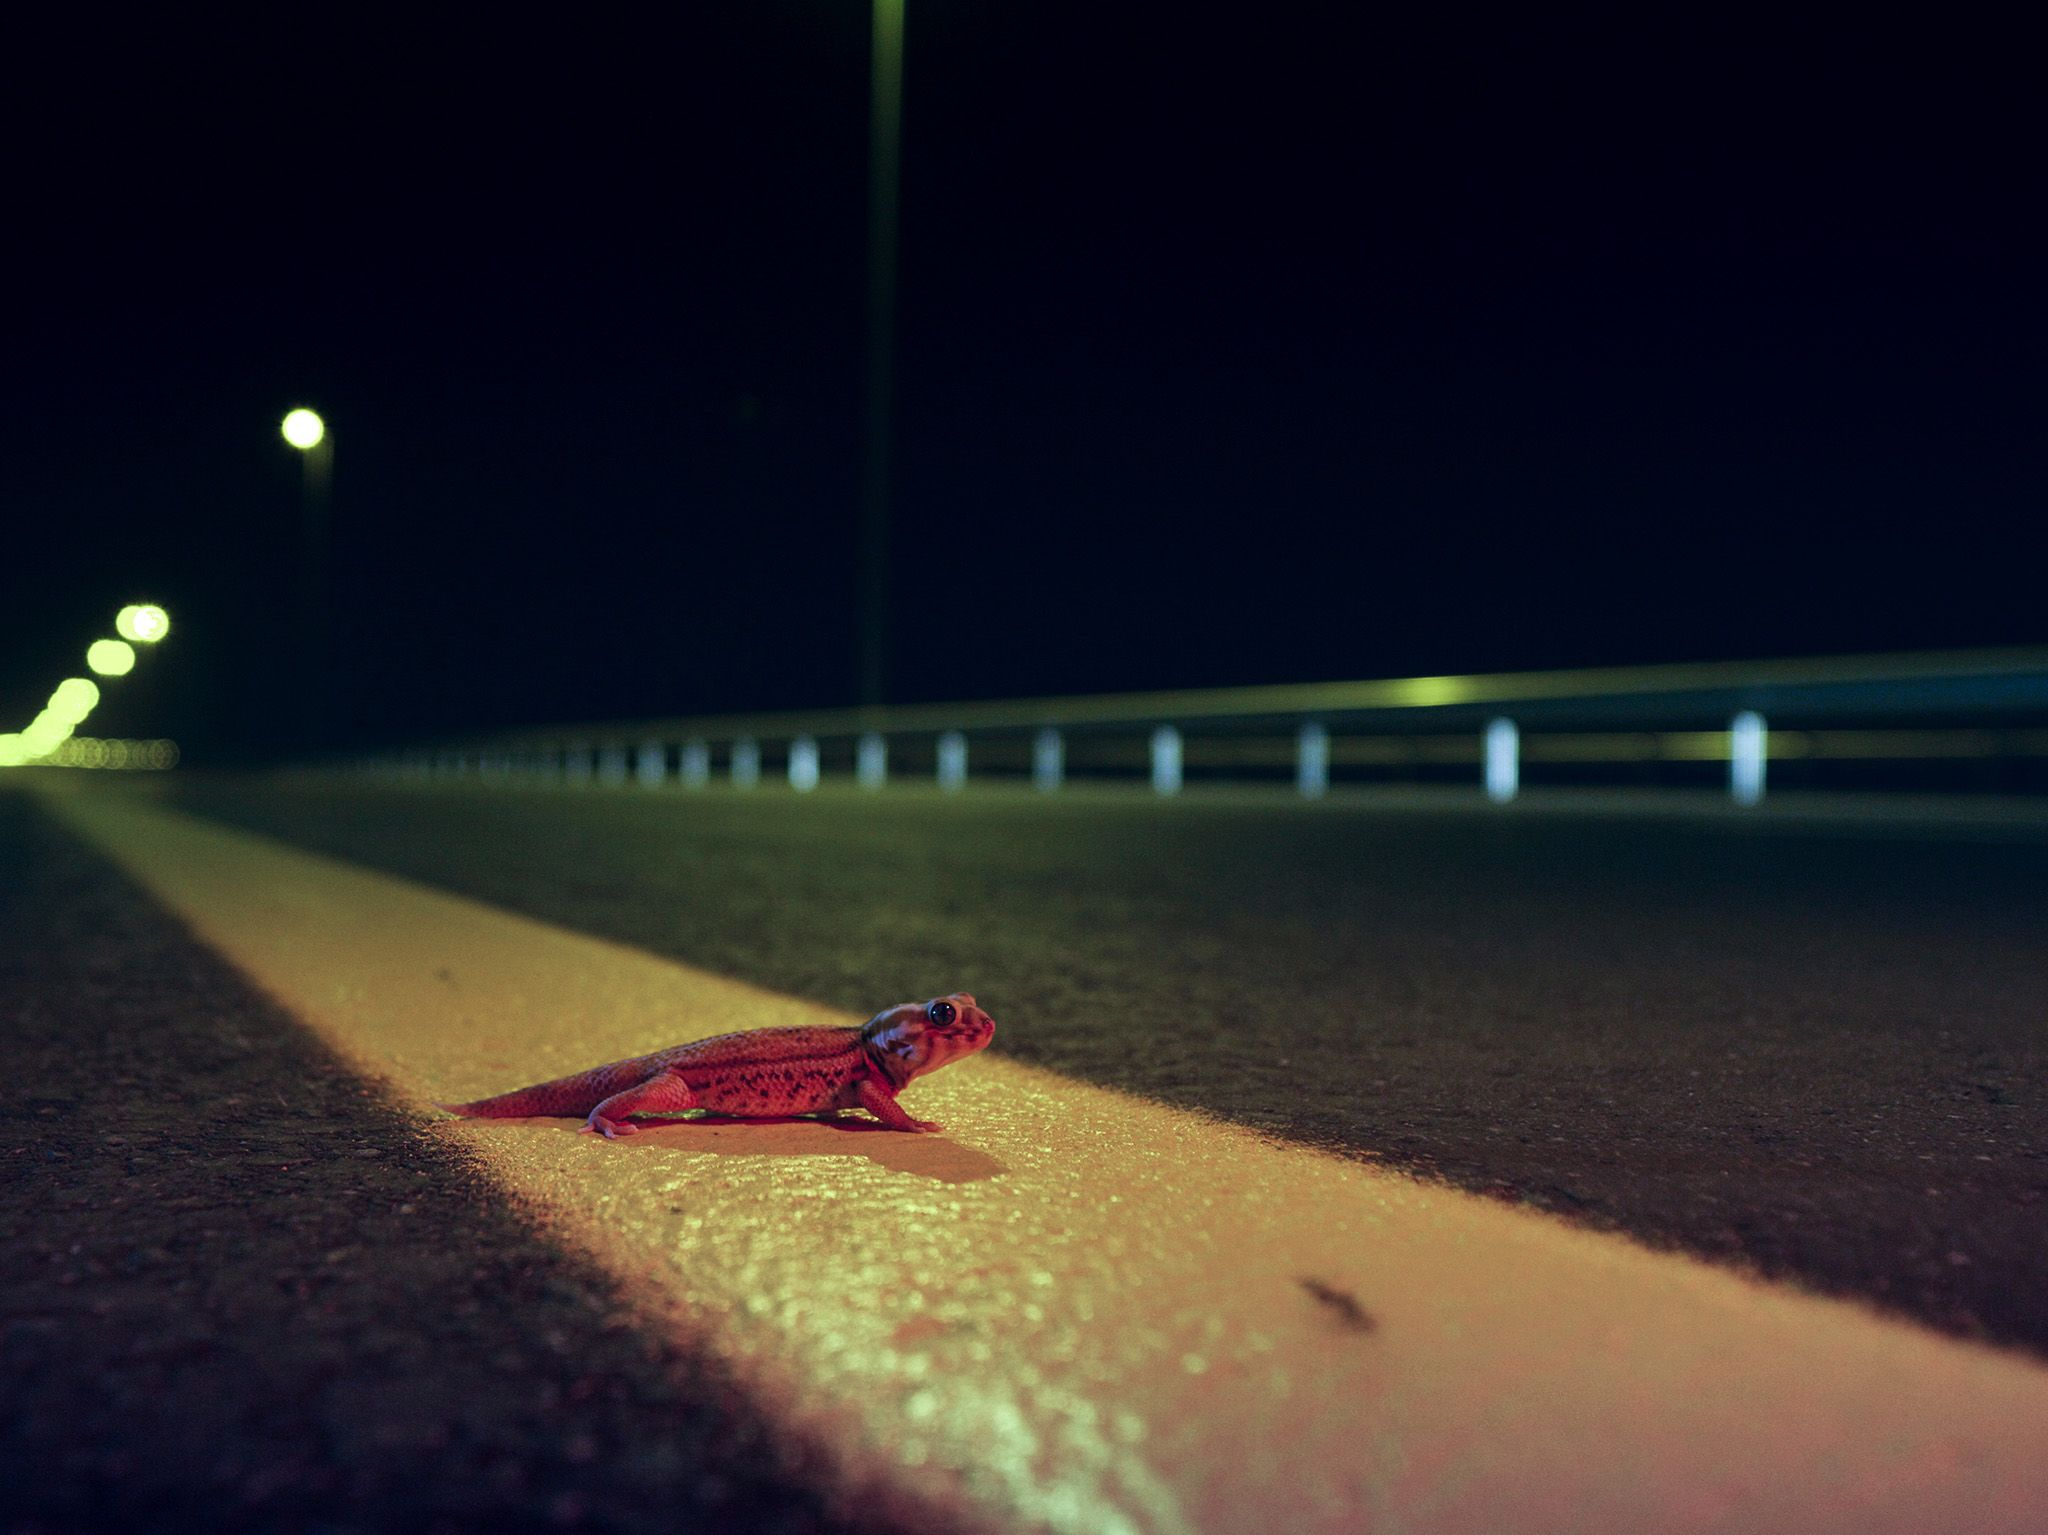 United Arab Emirates:  Wonder gecko standing next to a road.  This image is from Dead by Dawn. [Photo of the day - March 2019]